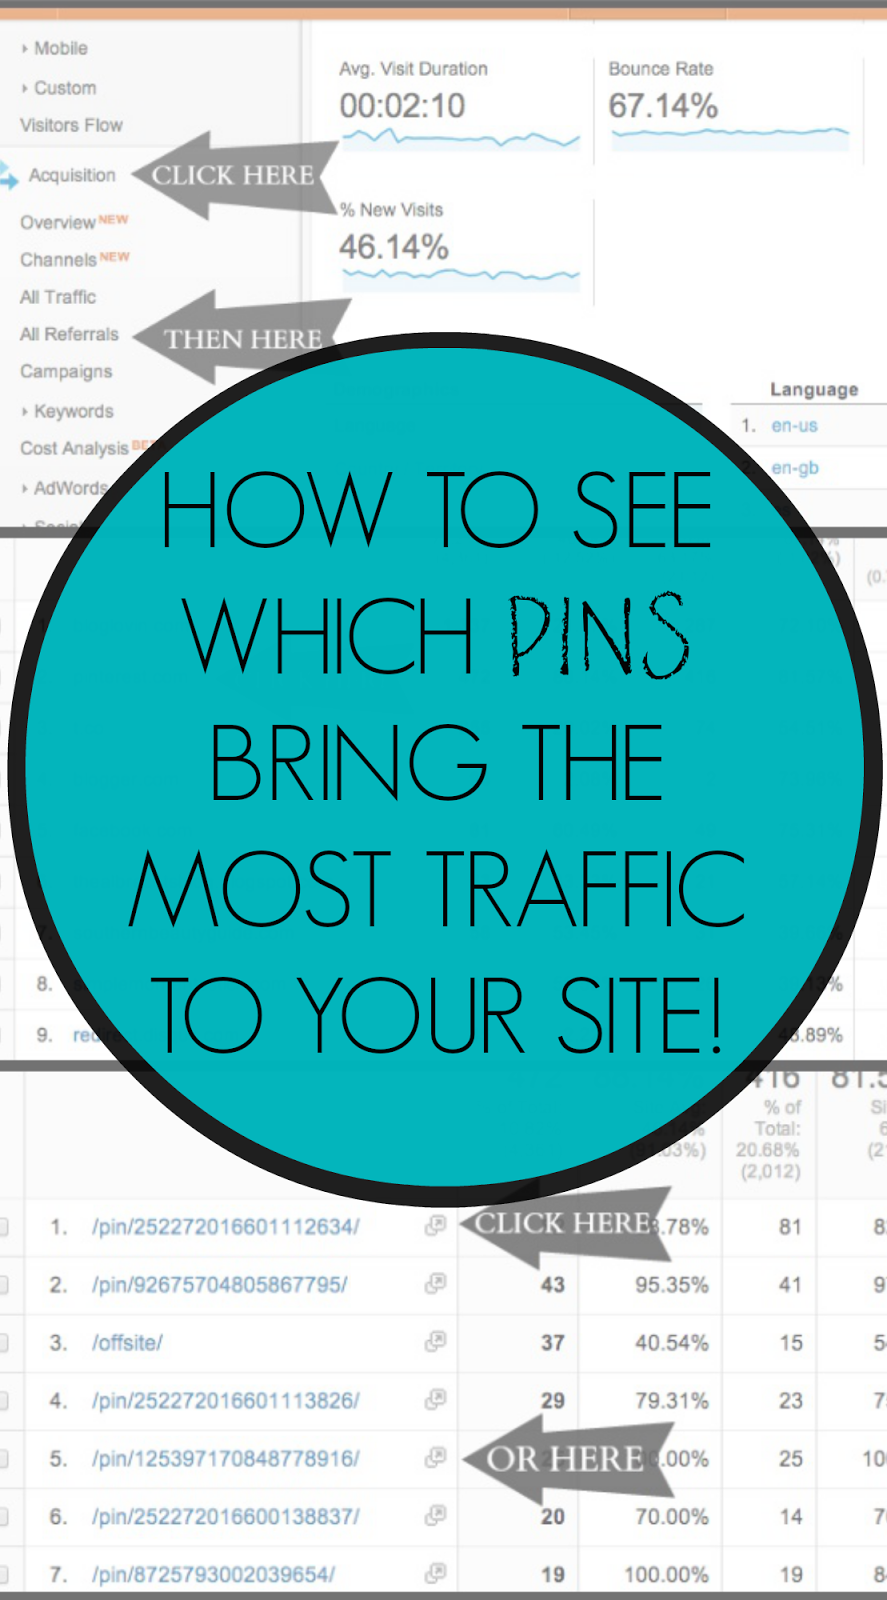 Pinterest, Pinterest tips, tips for bloggesr, blogging tips, social media, social media tips, drawing traffic to your blog, blog traffic, how to bring in blog traffic, website traffic, pageviews, pinterest traffic, pins